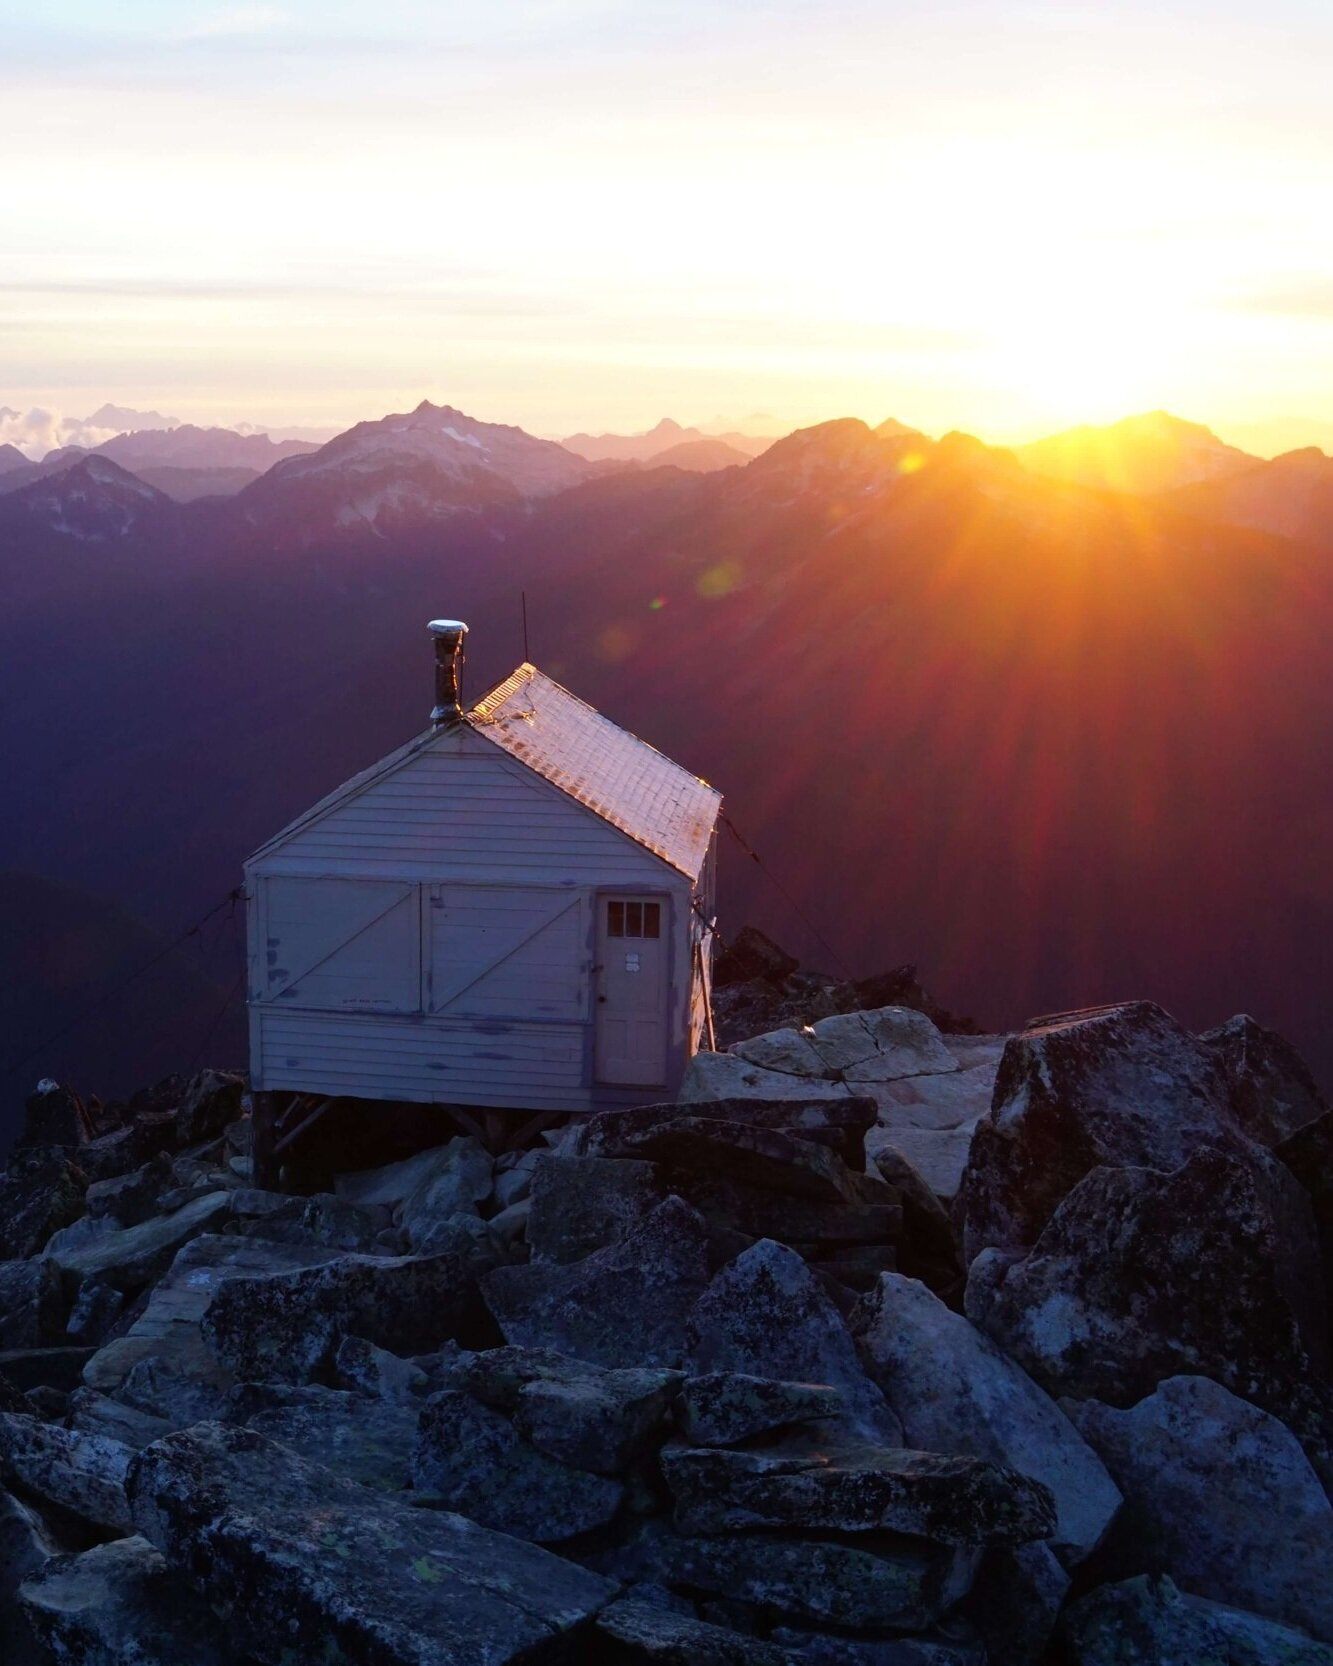 Hidden Lake Lookout is located just outside the boundary for the North Cascades National Park.